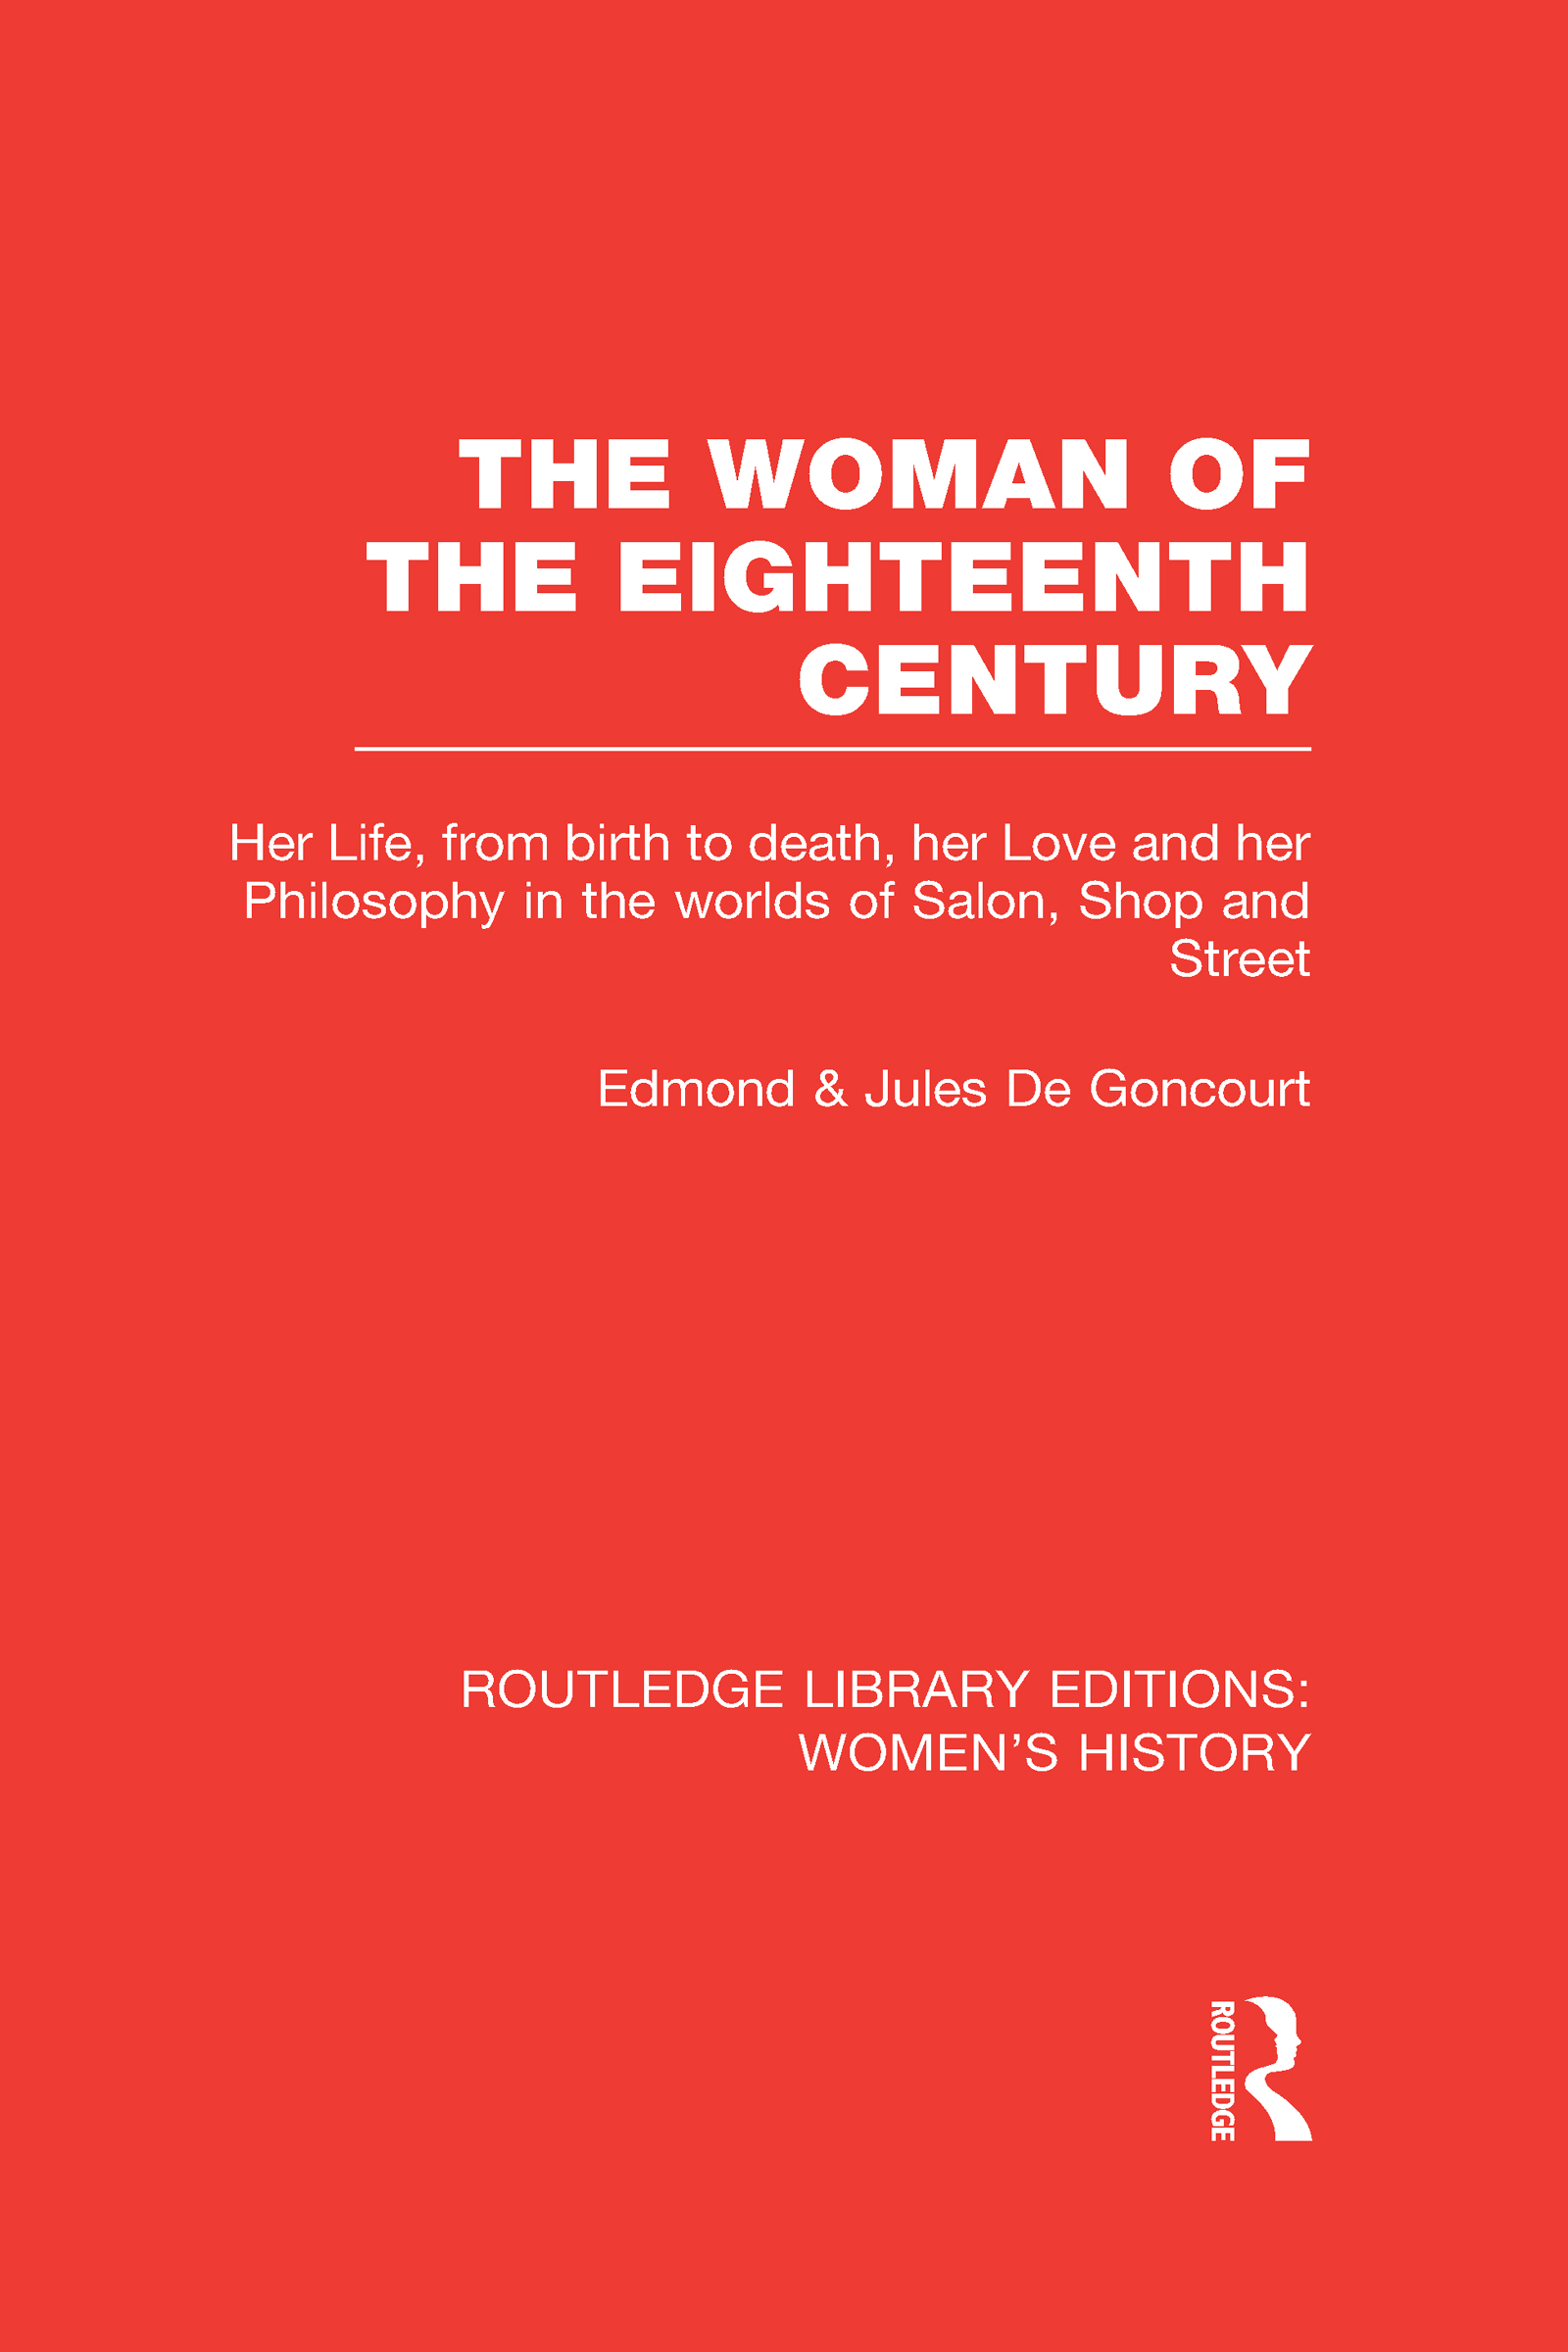 The Woman of the Eighteenth Century: Her Life, from Birth to Death, Her Love and Her Philosophy in the Worlds of Salon, Shop and Street (Hardback) book cover